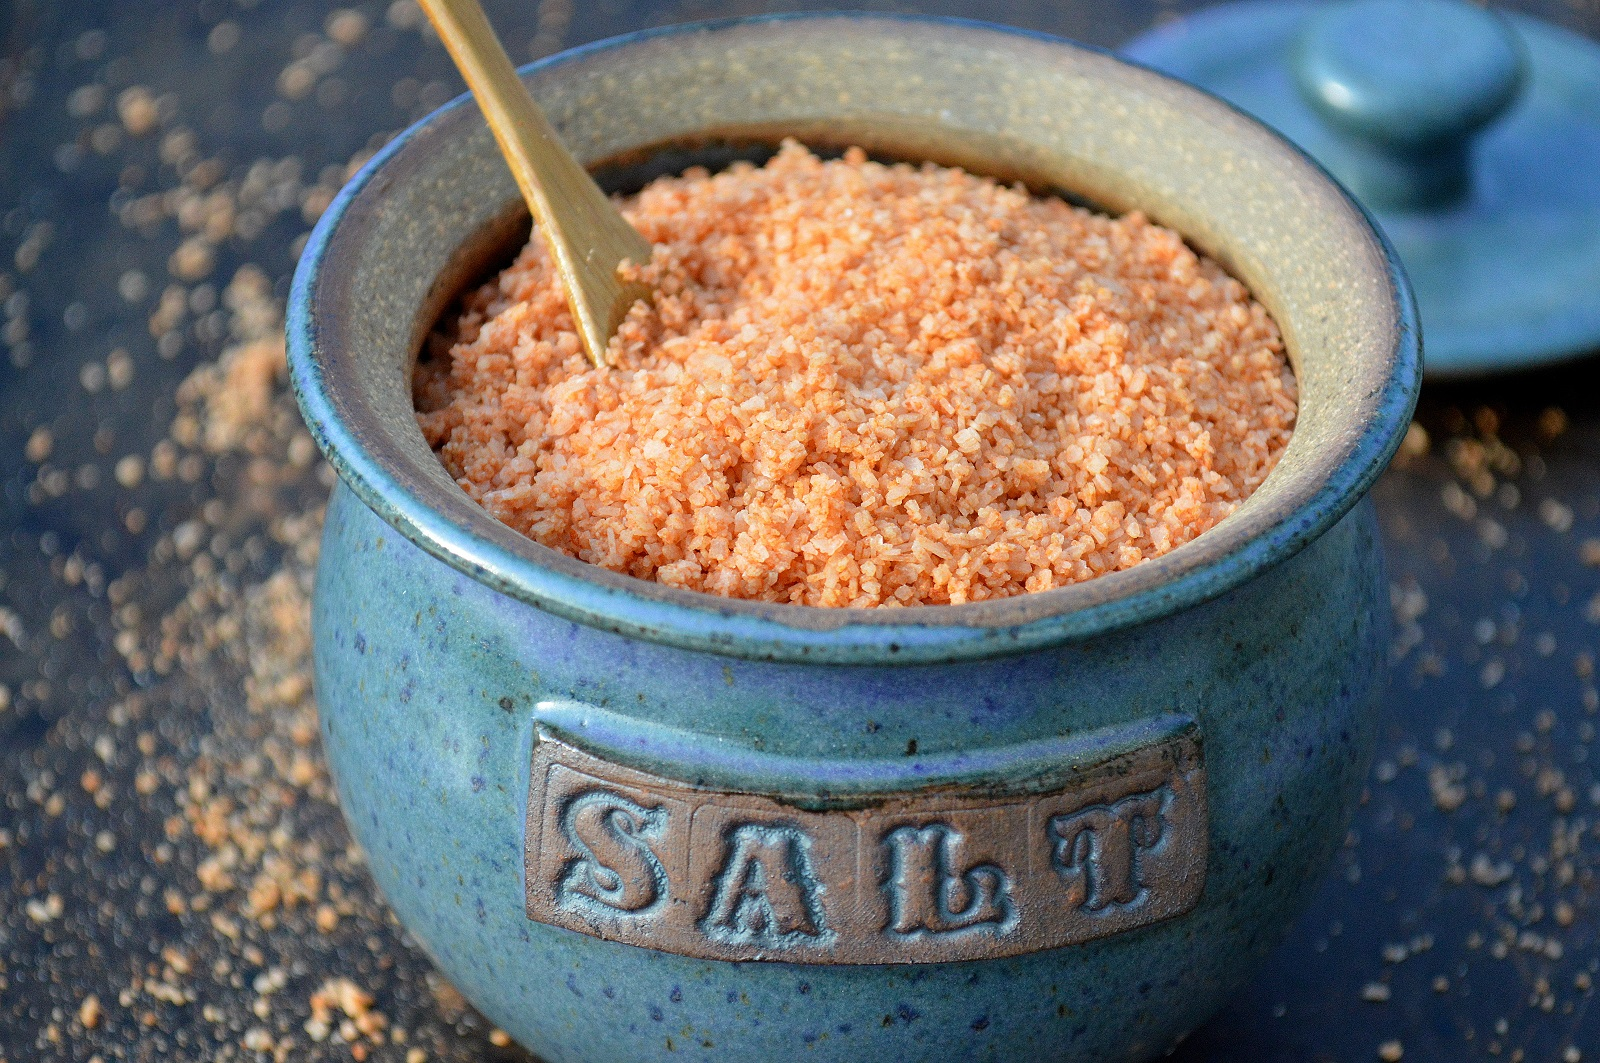 DIY Homemade Sriracha Salt makes a great hostess or holiday gift! It's a flavor explosion and just 2 ingredients!